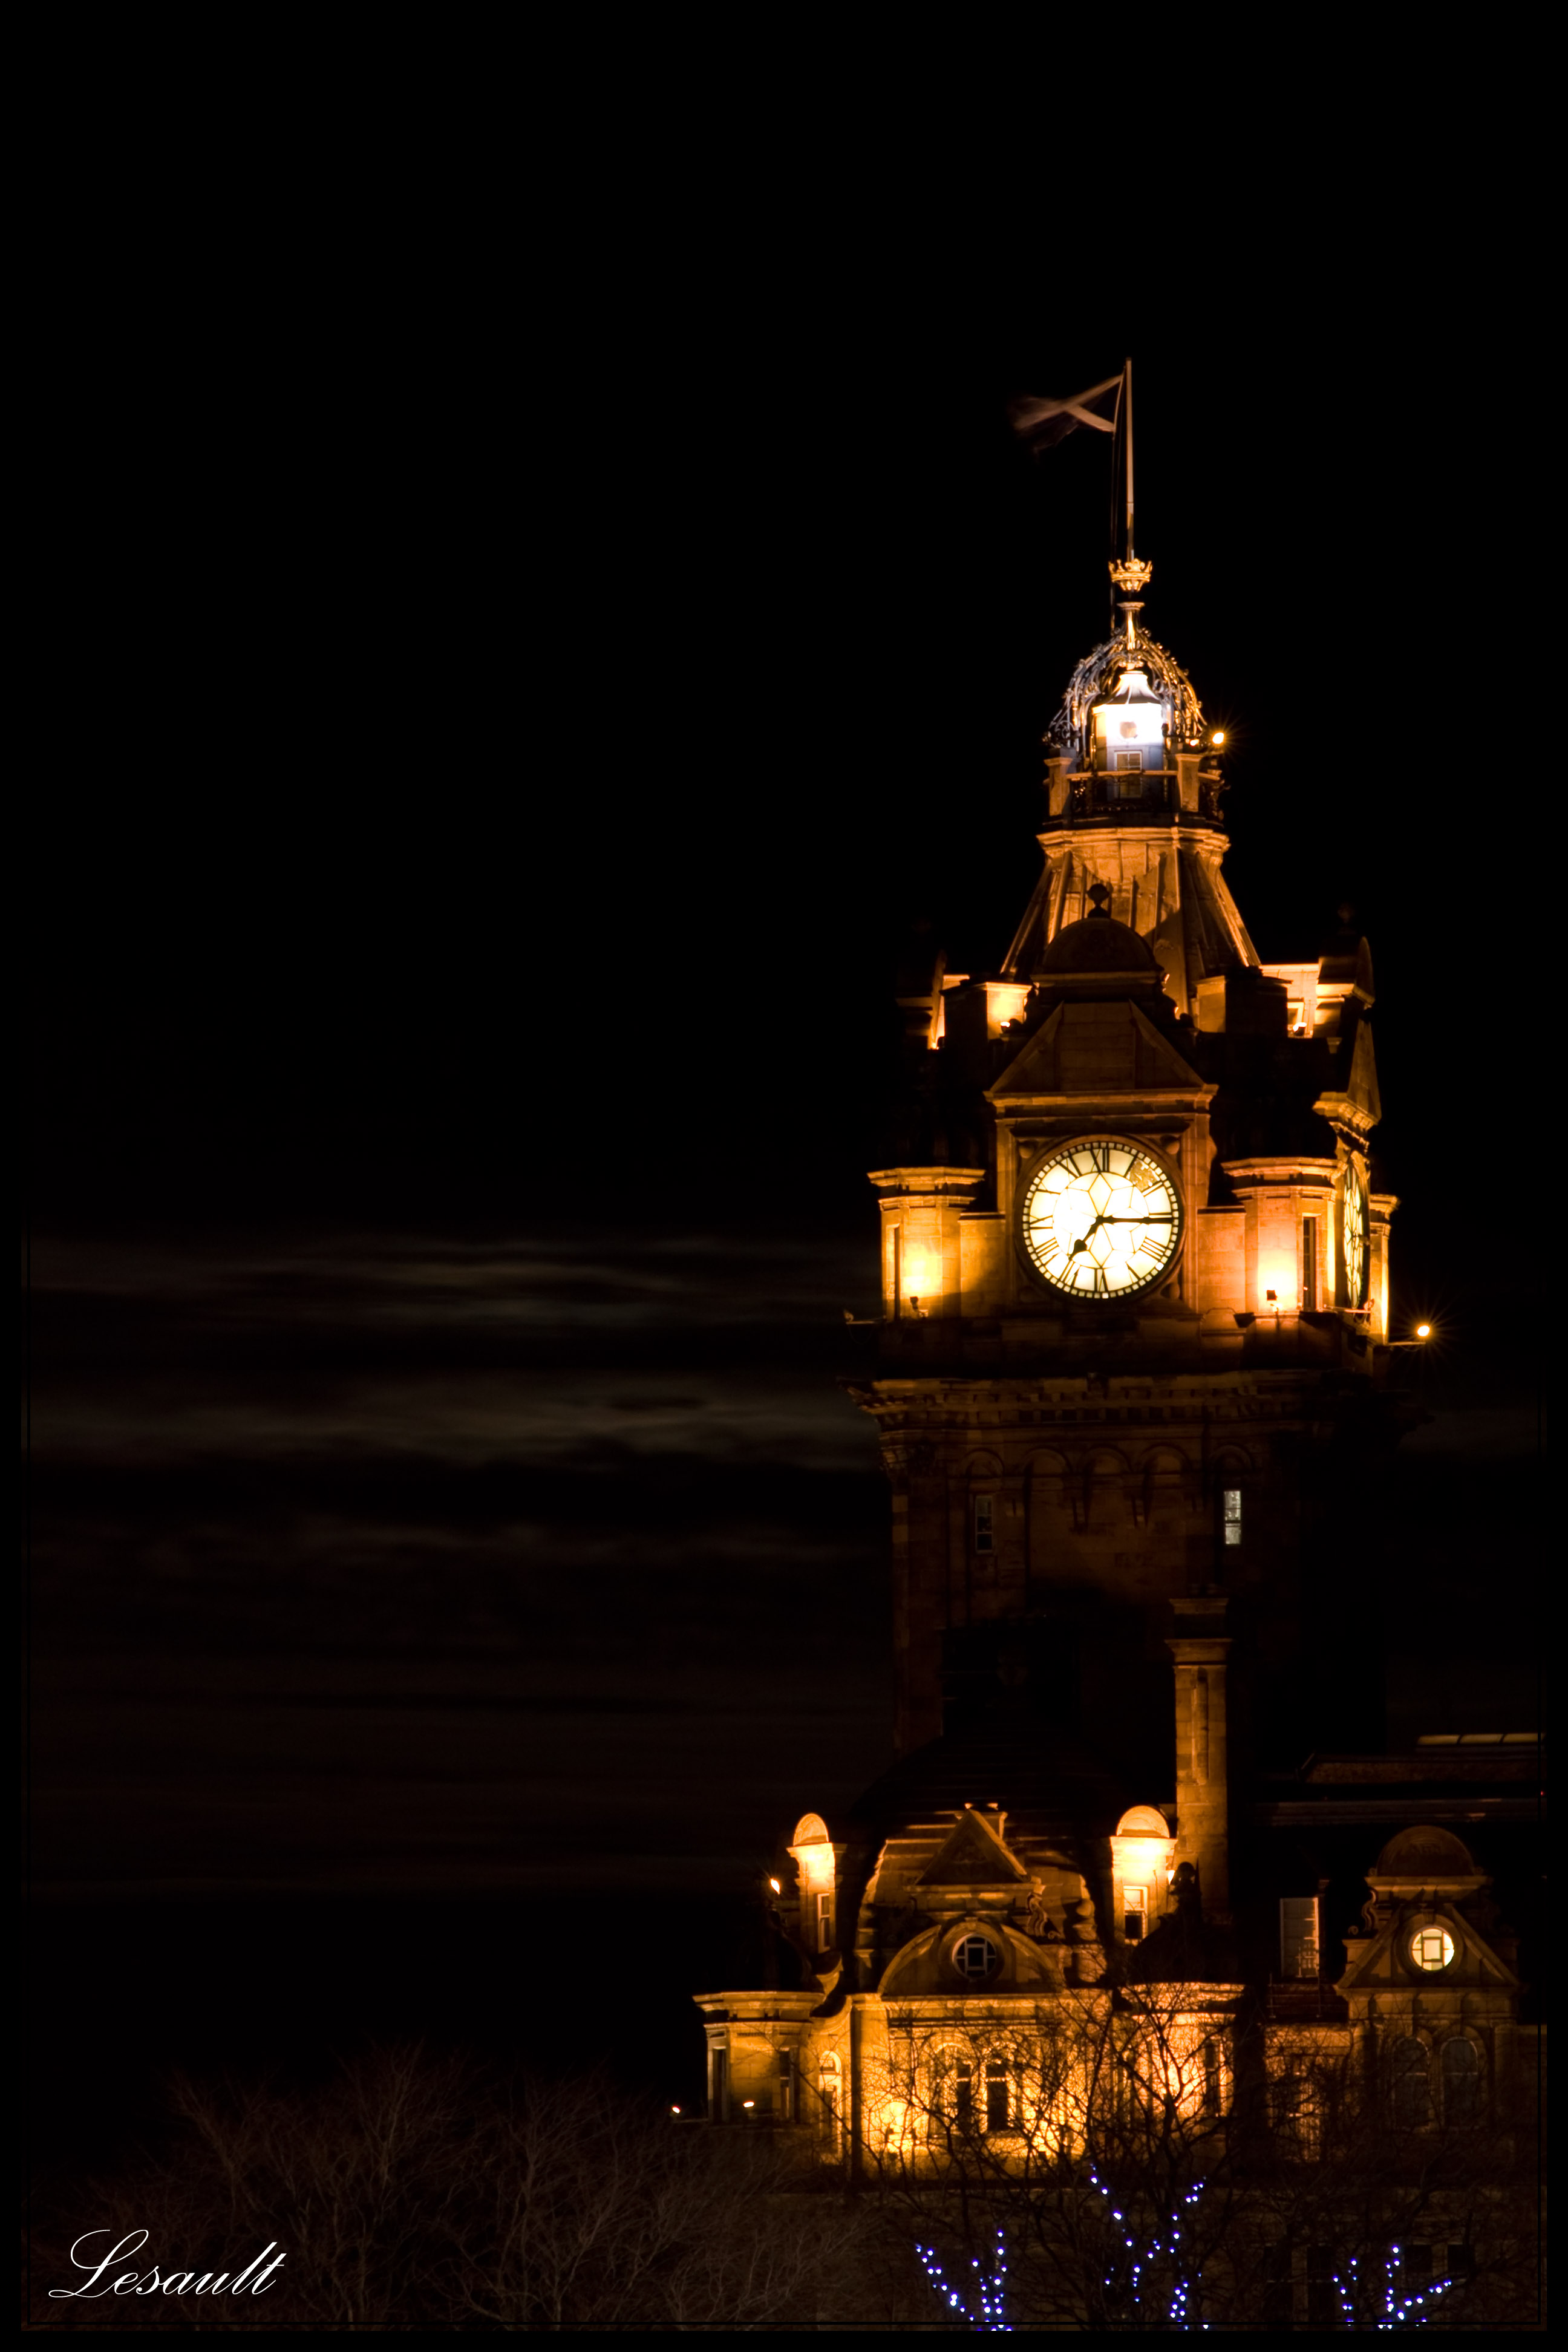 clocktower on the Balmoral Hotel